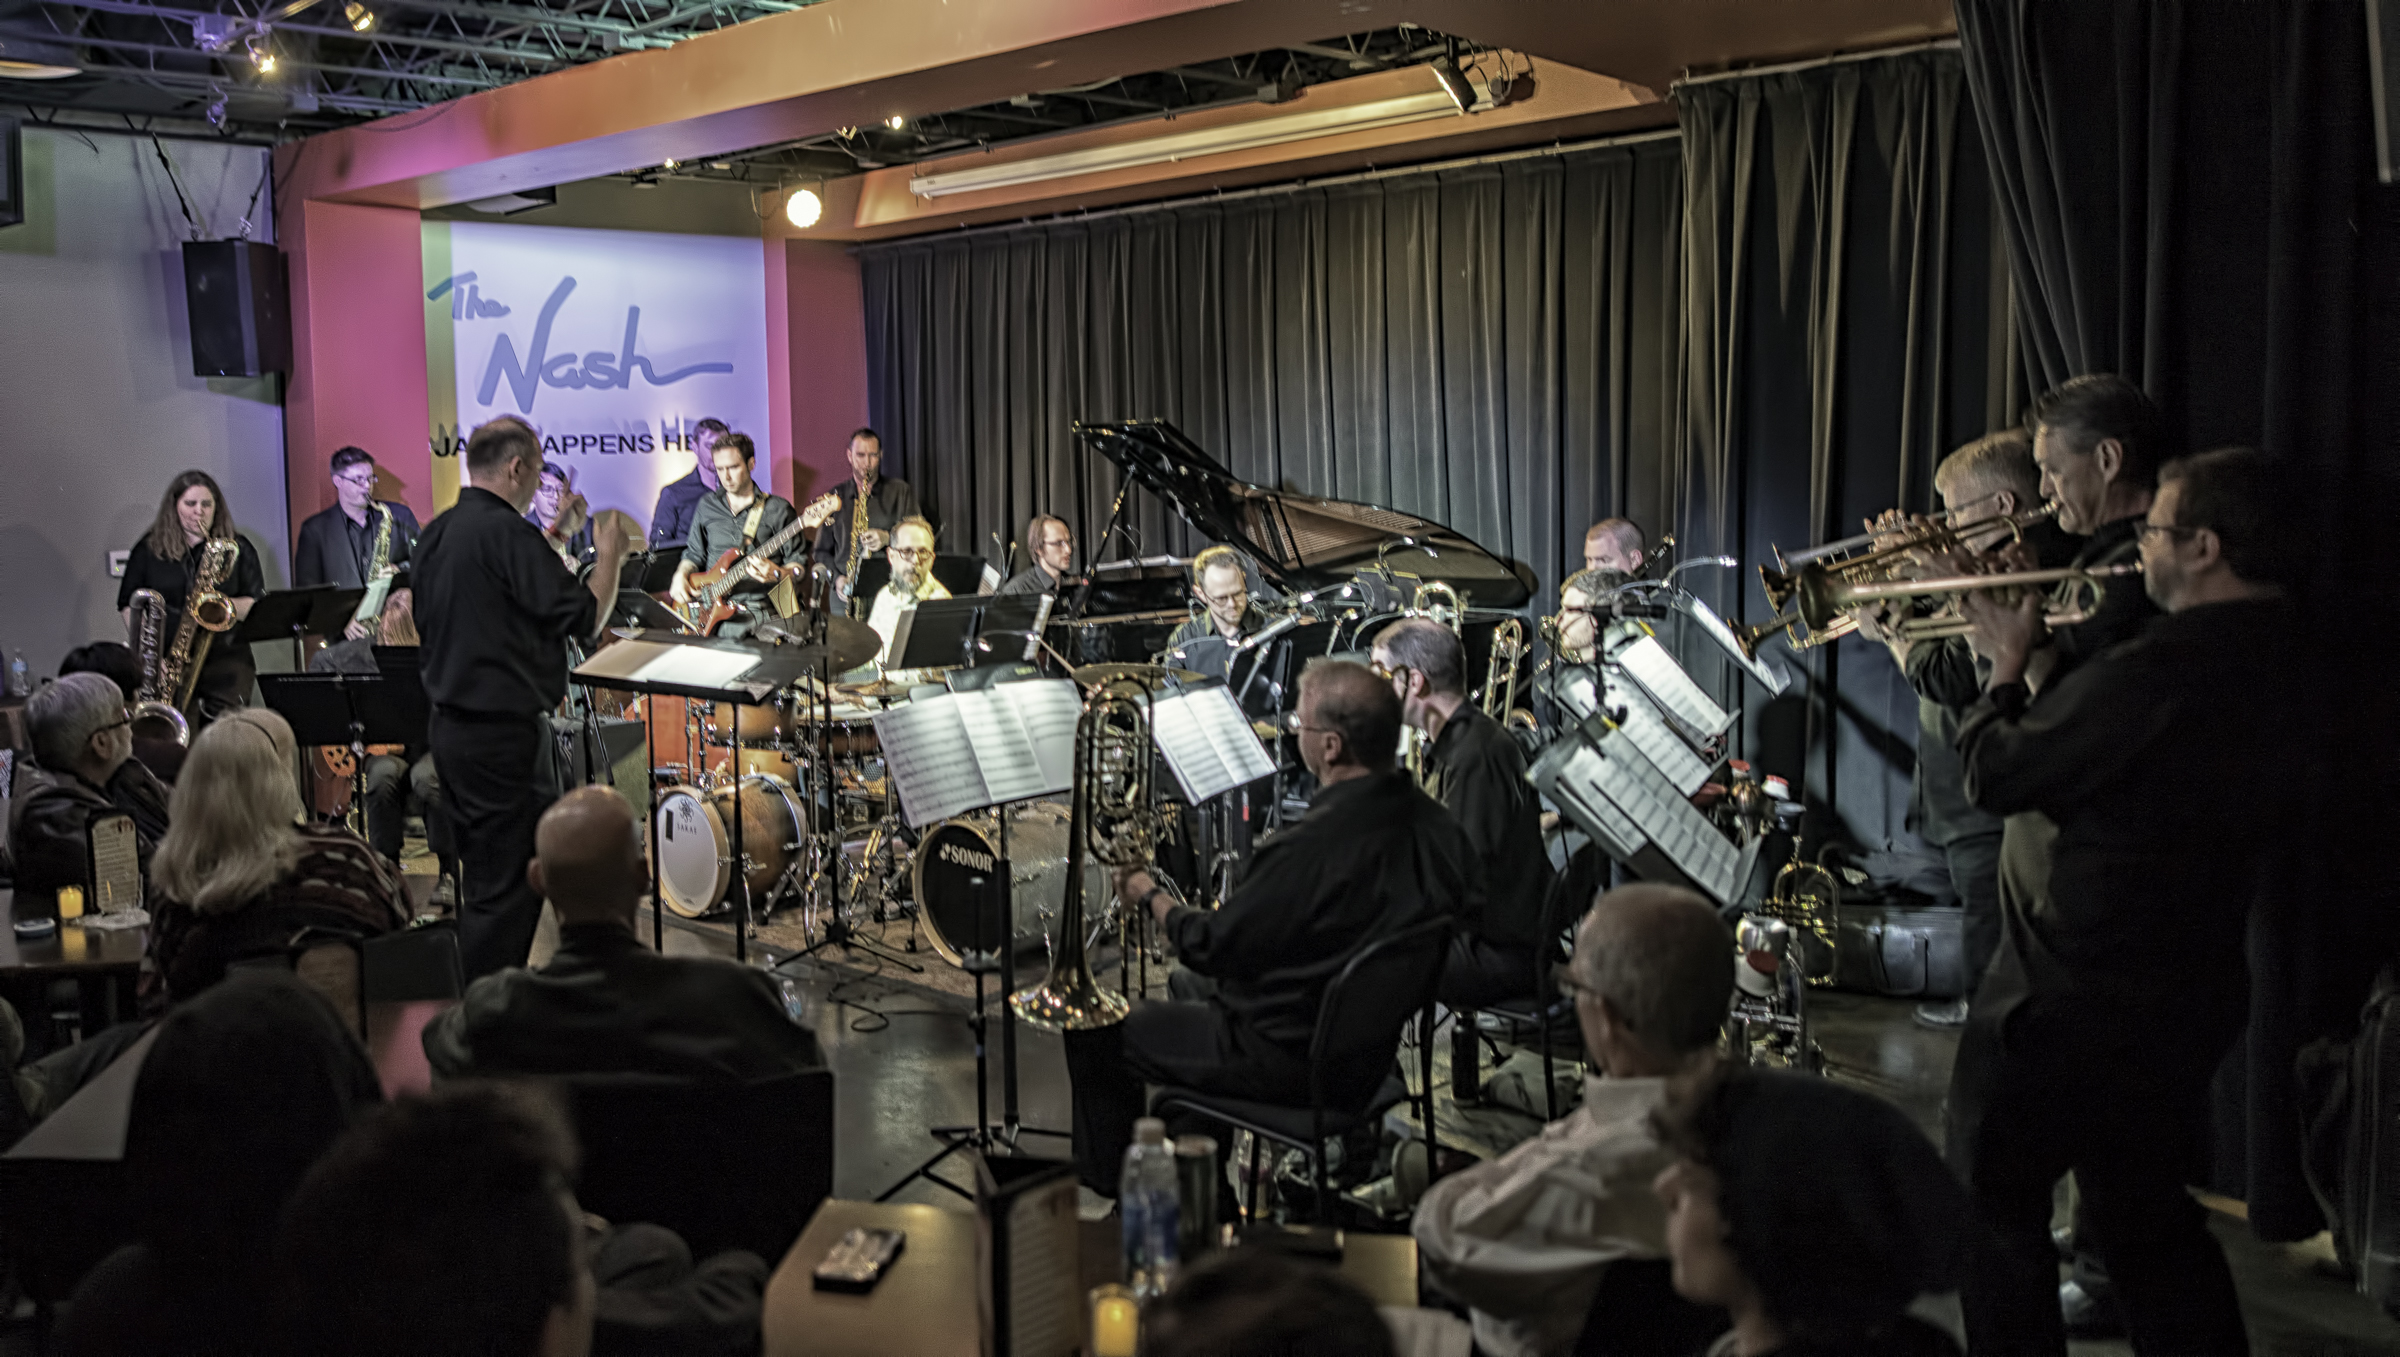 John Hollenbeck With Eric Rasmussen And Scottsdale Community College Jazz Orchestra At The Nash In Phoenix